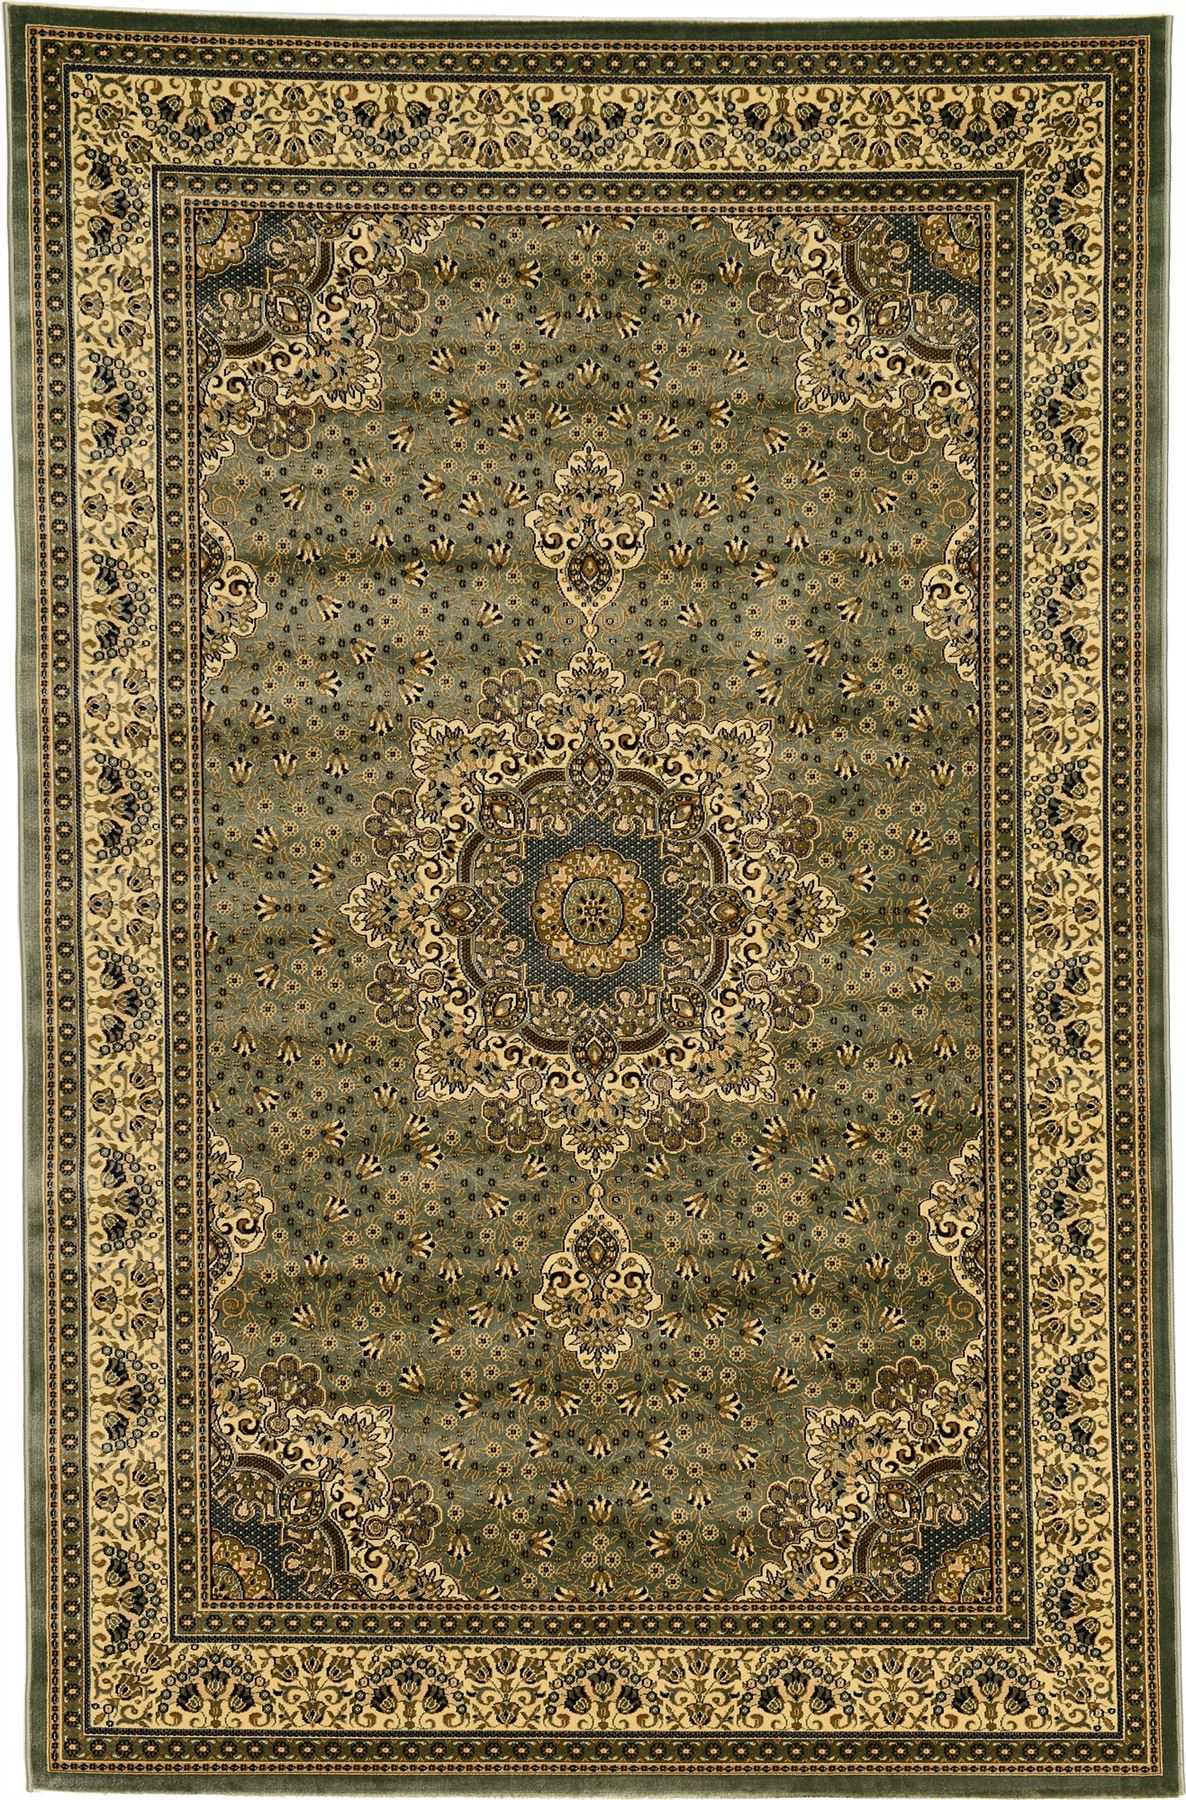 Persian 6 5 X 9 6 Kashan Design Rug Traditional Area